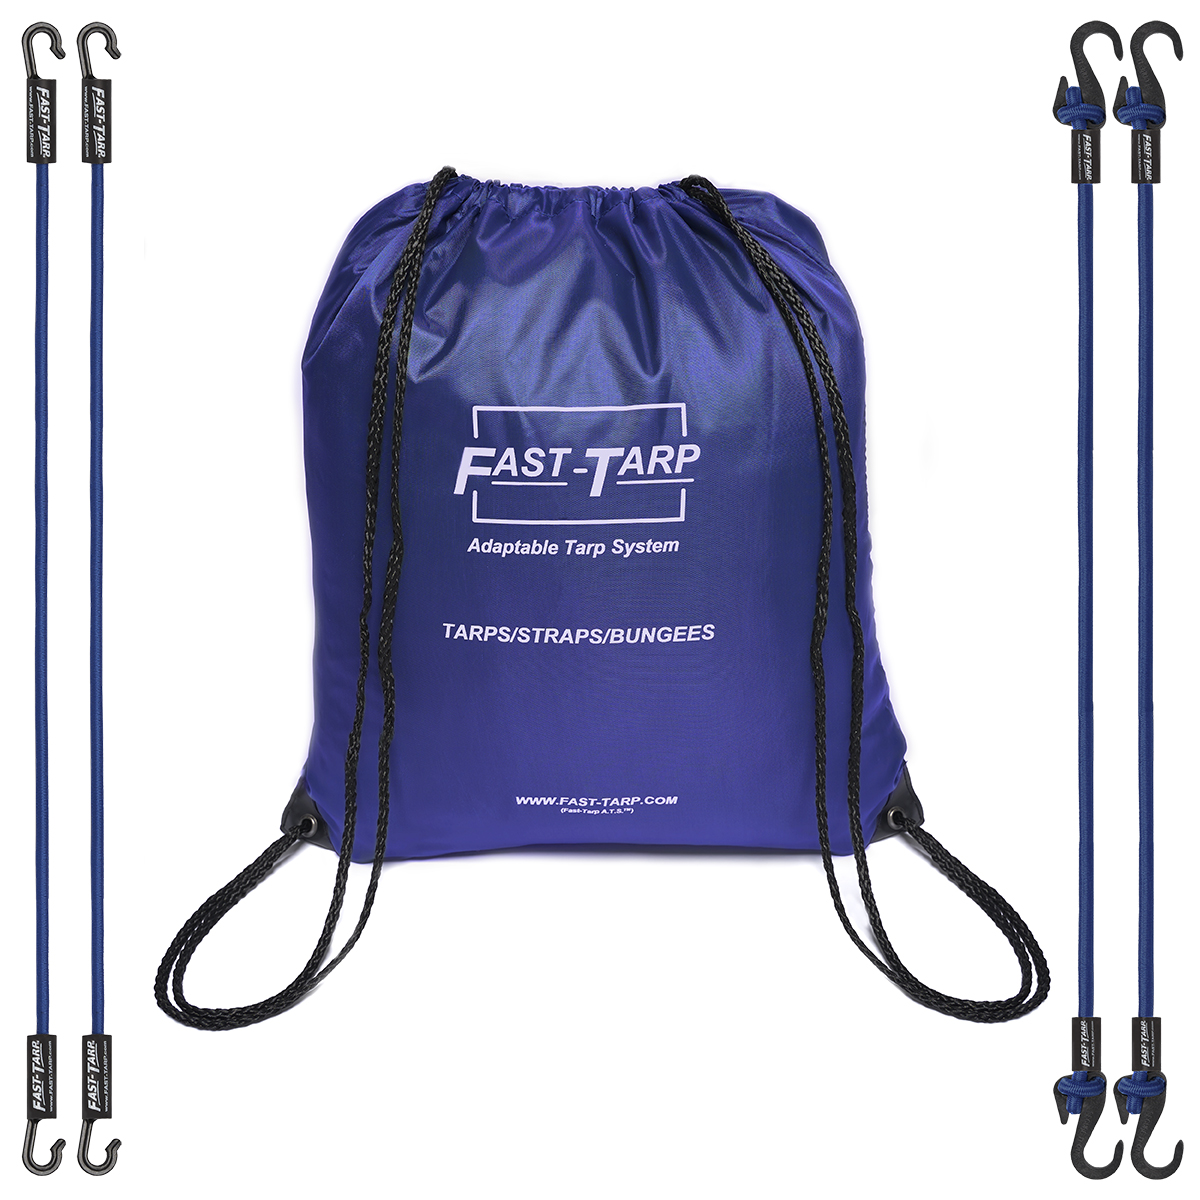 Blue Tarp bag with bungees